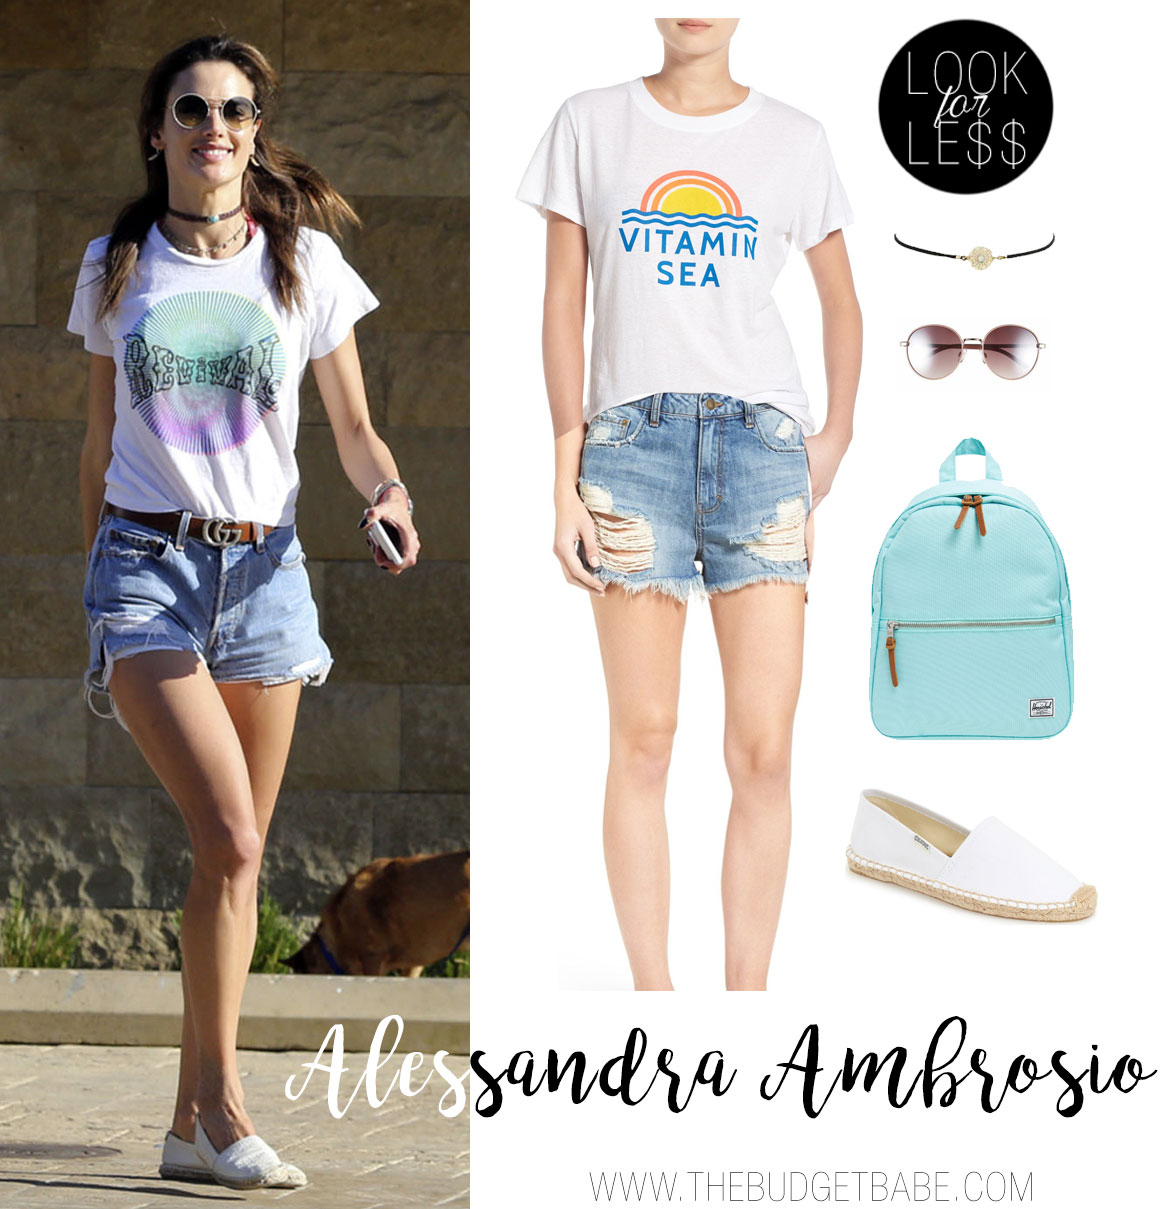 Looking for celebrity looks for less? Try Alessandra Ambrosio's chill summer looks with these under $50 finds.